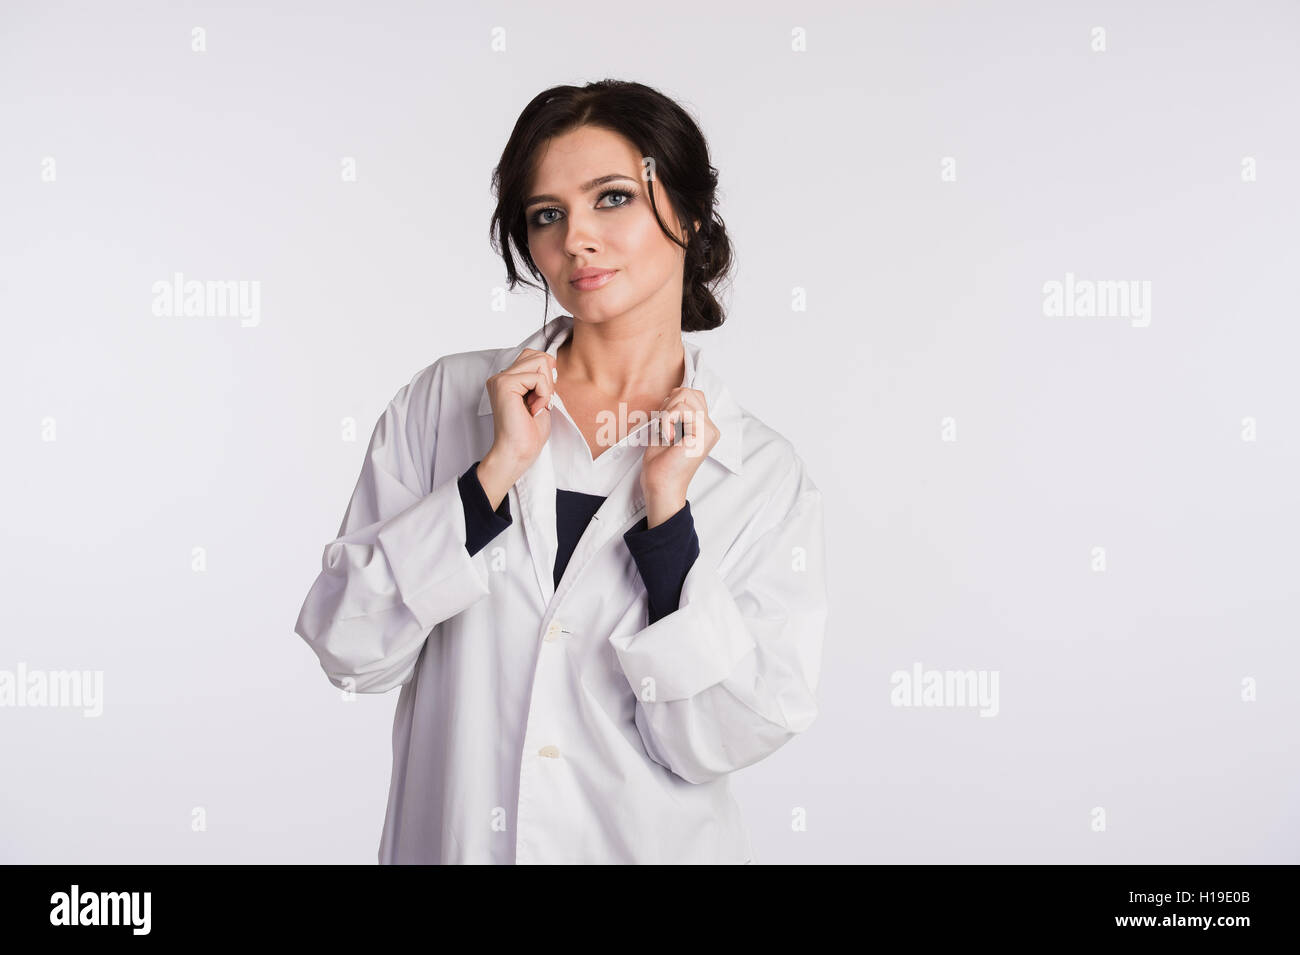 Woman doctor holding up her collar and standing against a white background - Stock Image